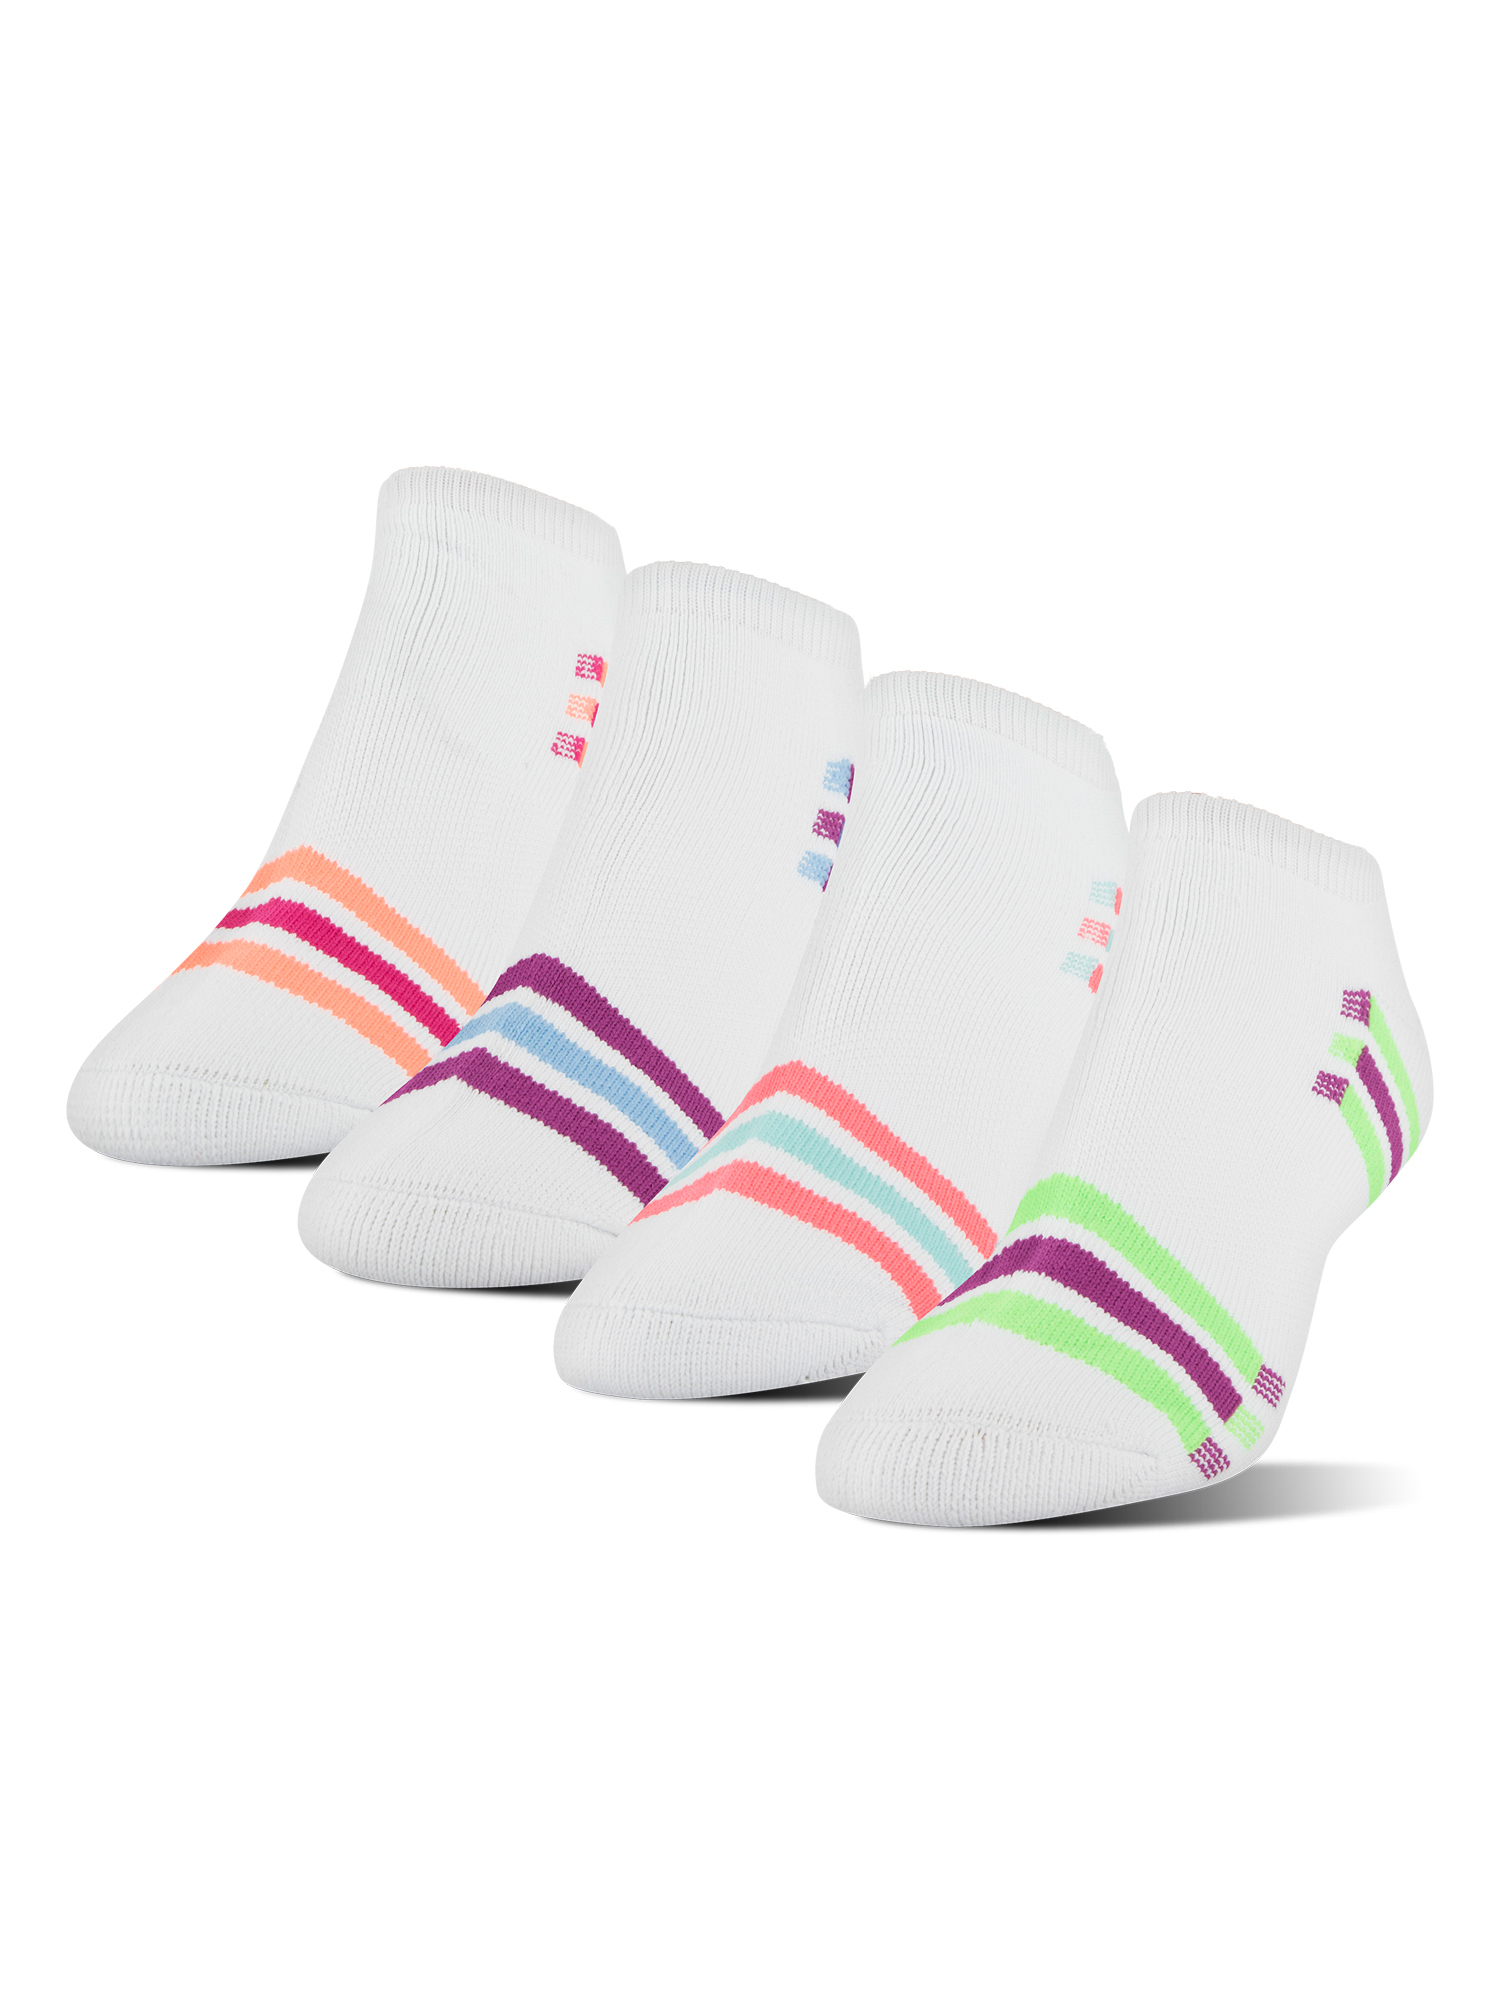 Women's XS Memory Cushion No Show Socks, 4 Pairs